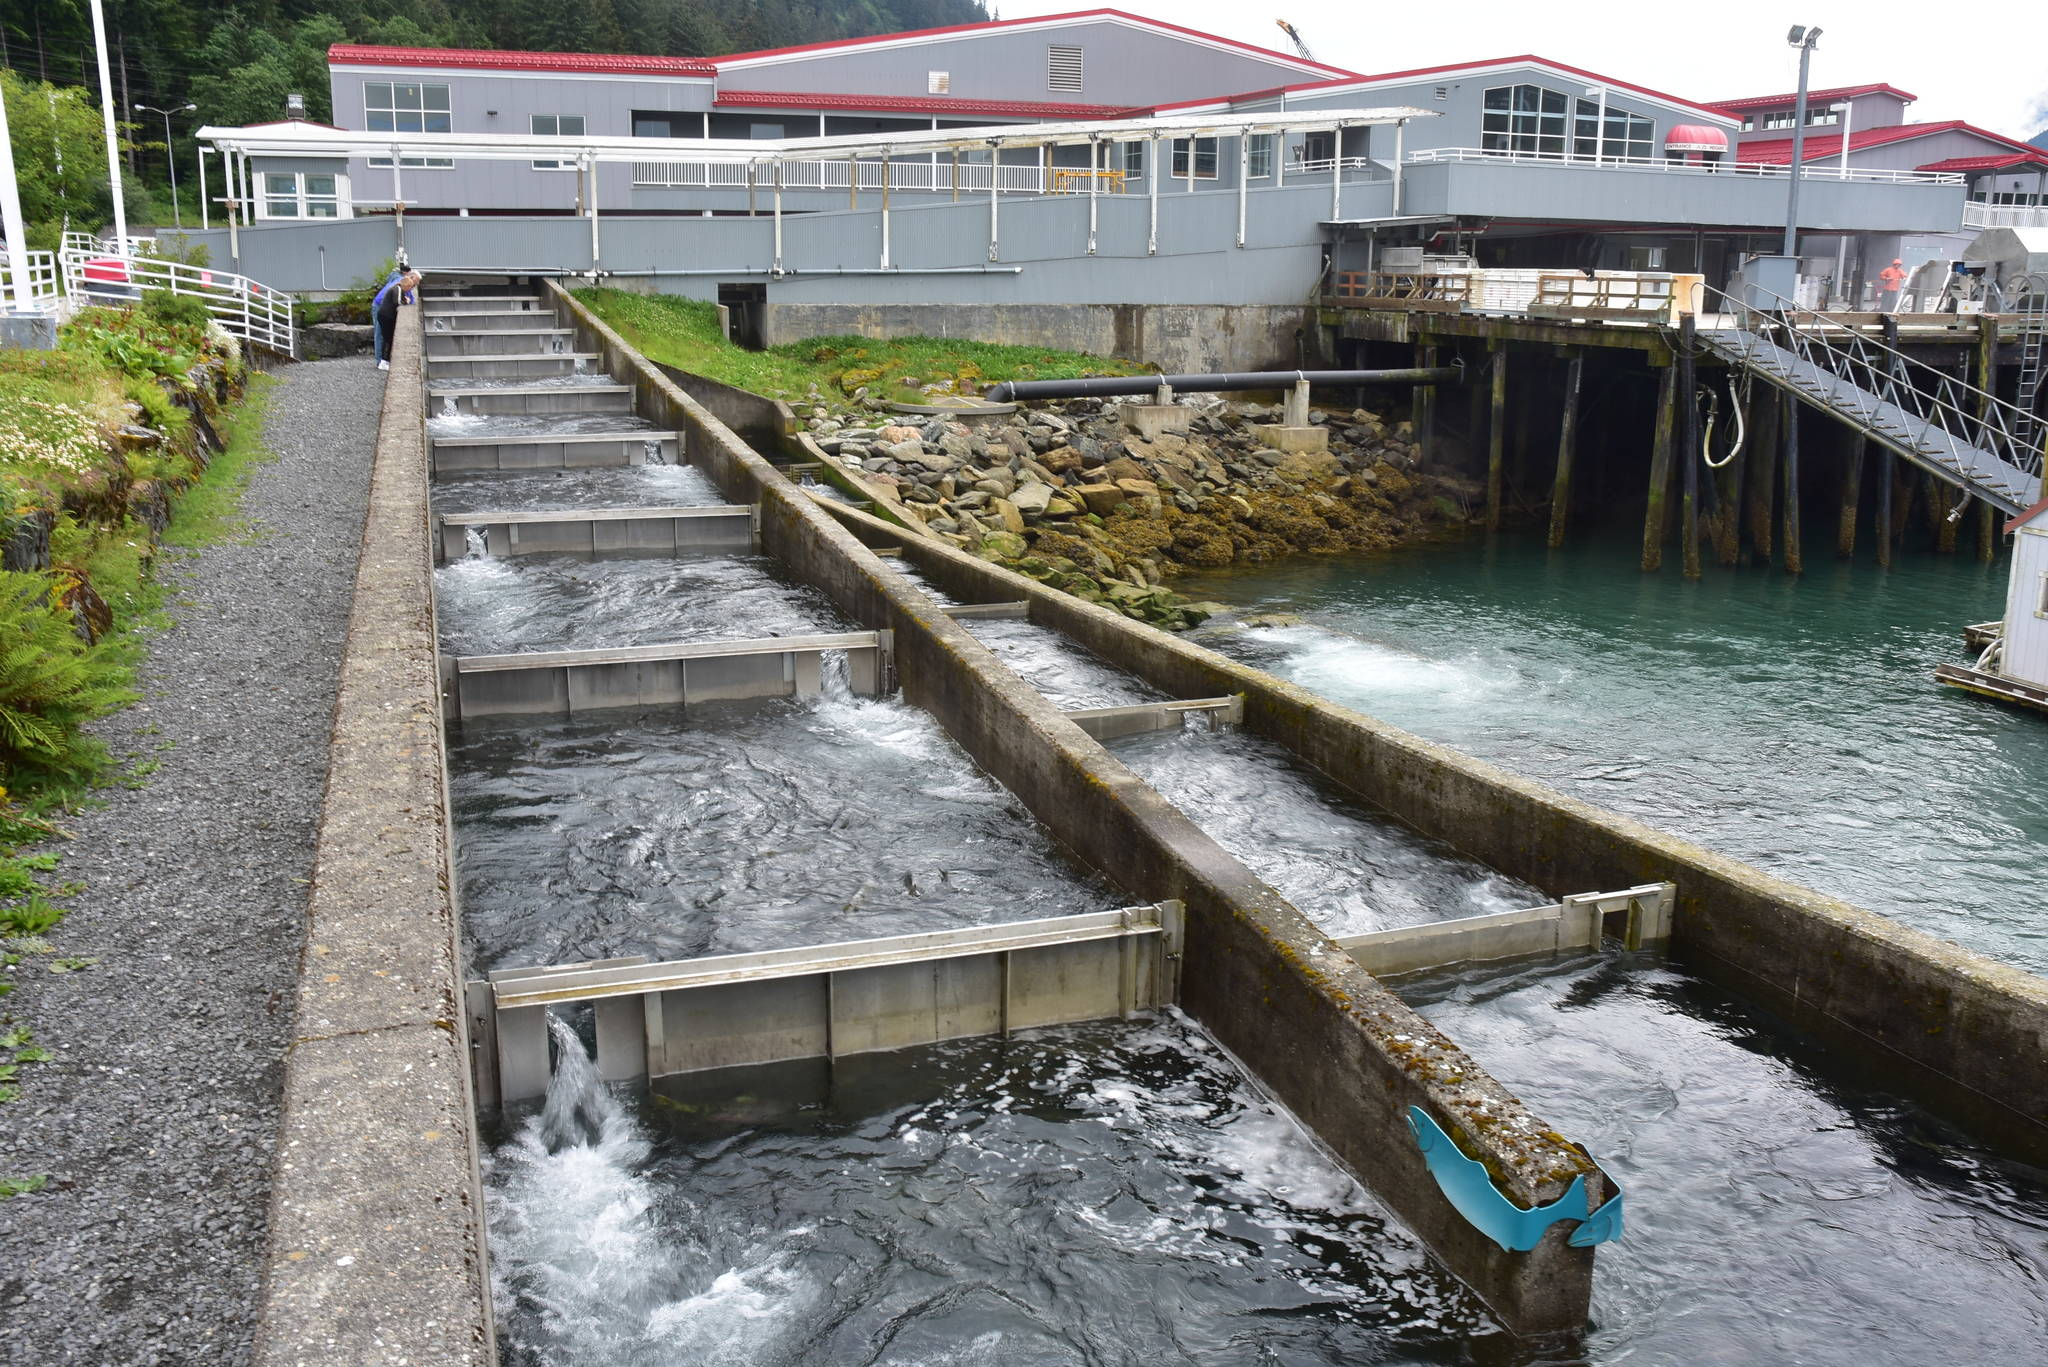 Some salmon return, but 'not nearly enough'